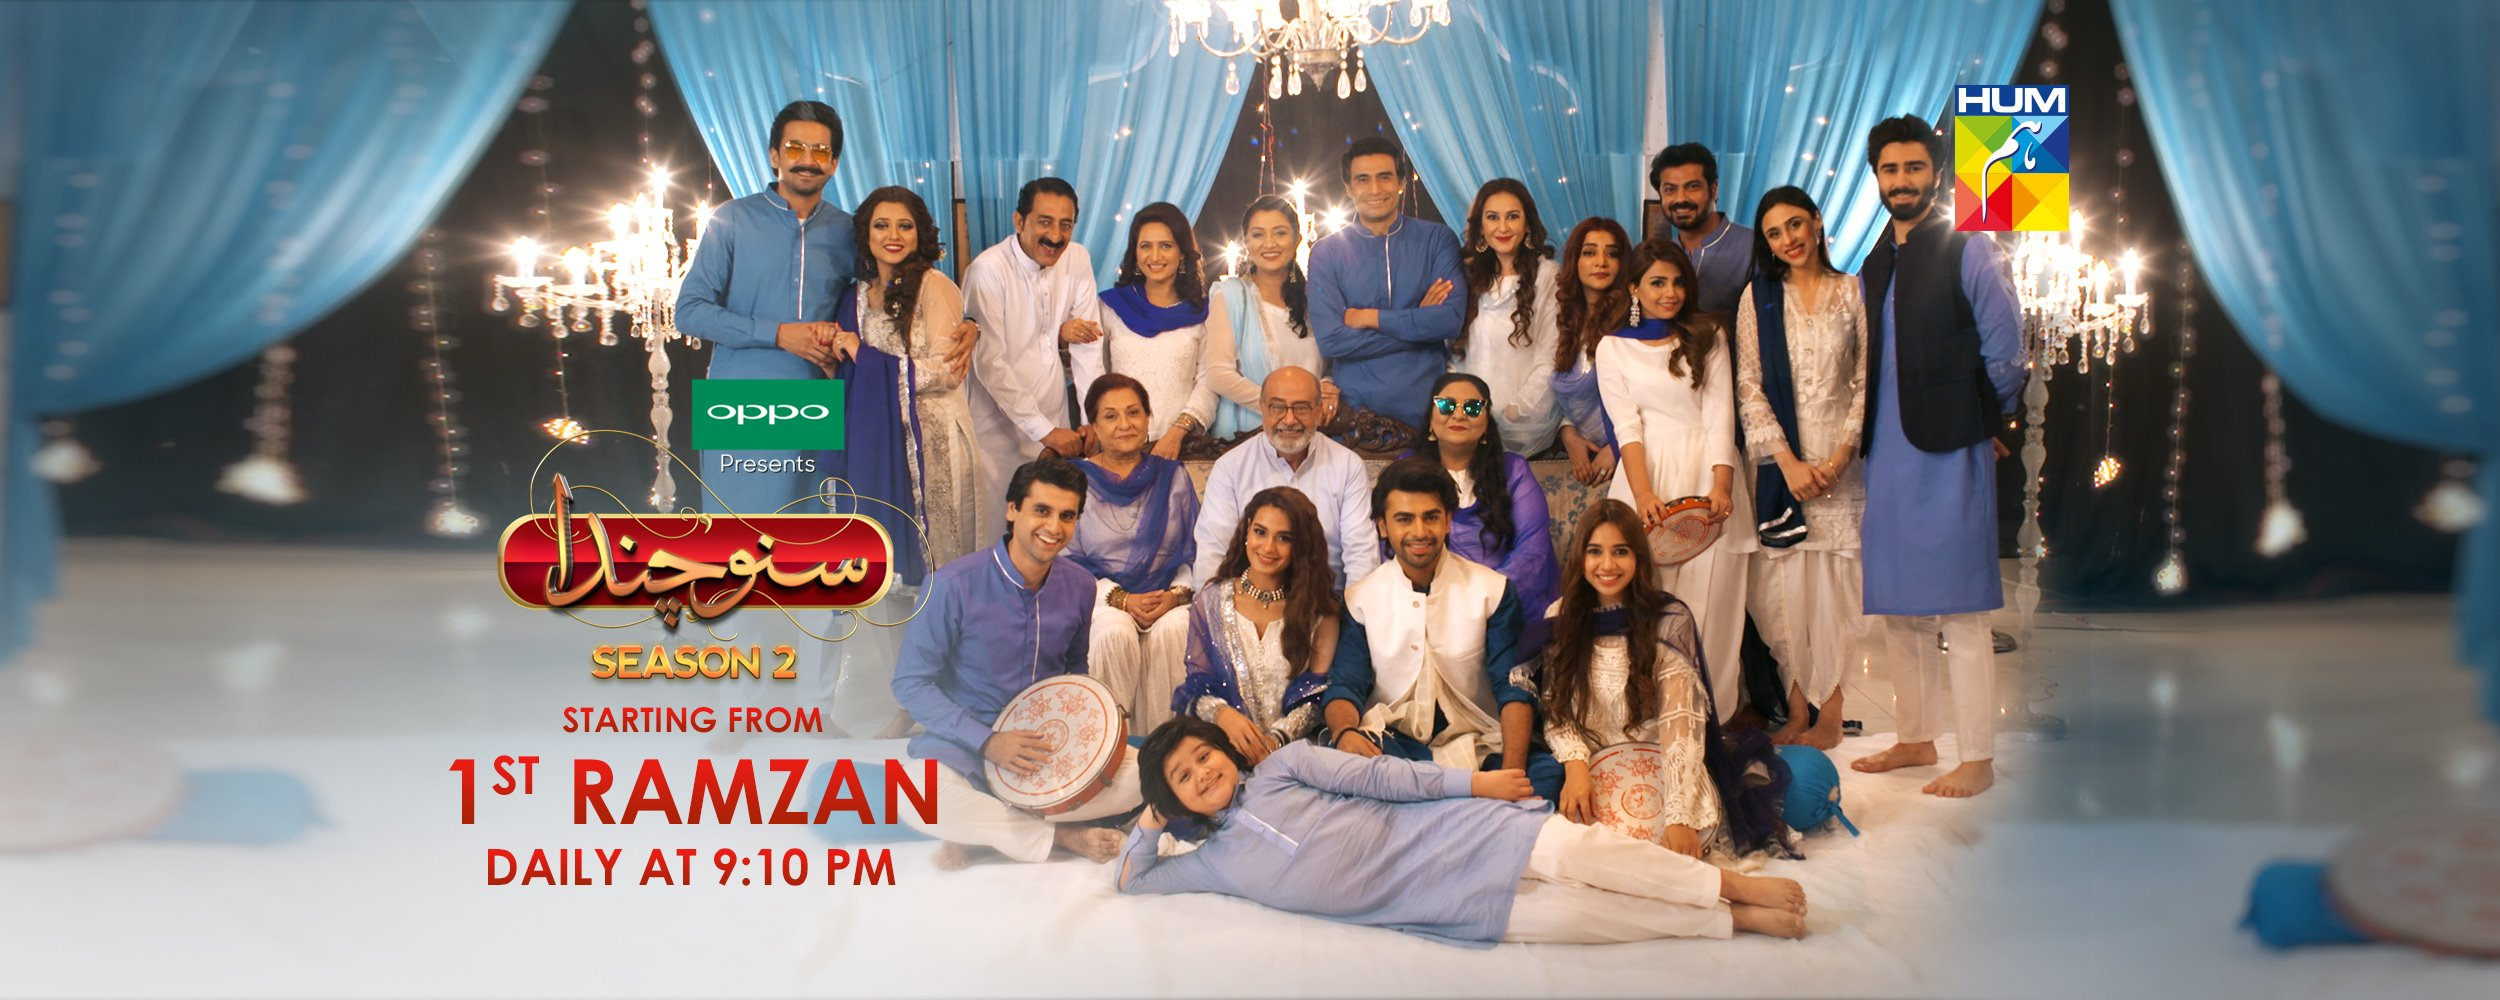 Suno Chanda Season 2